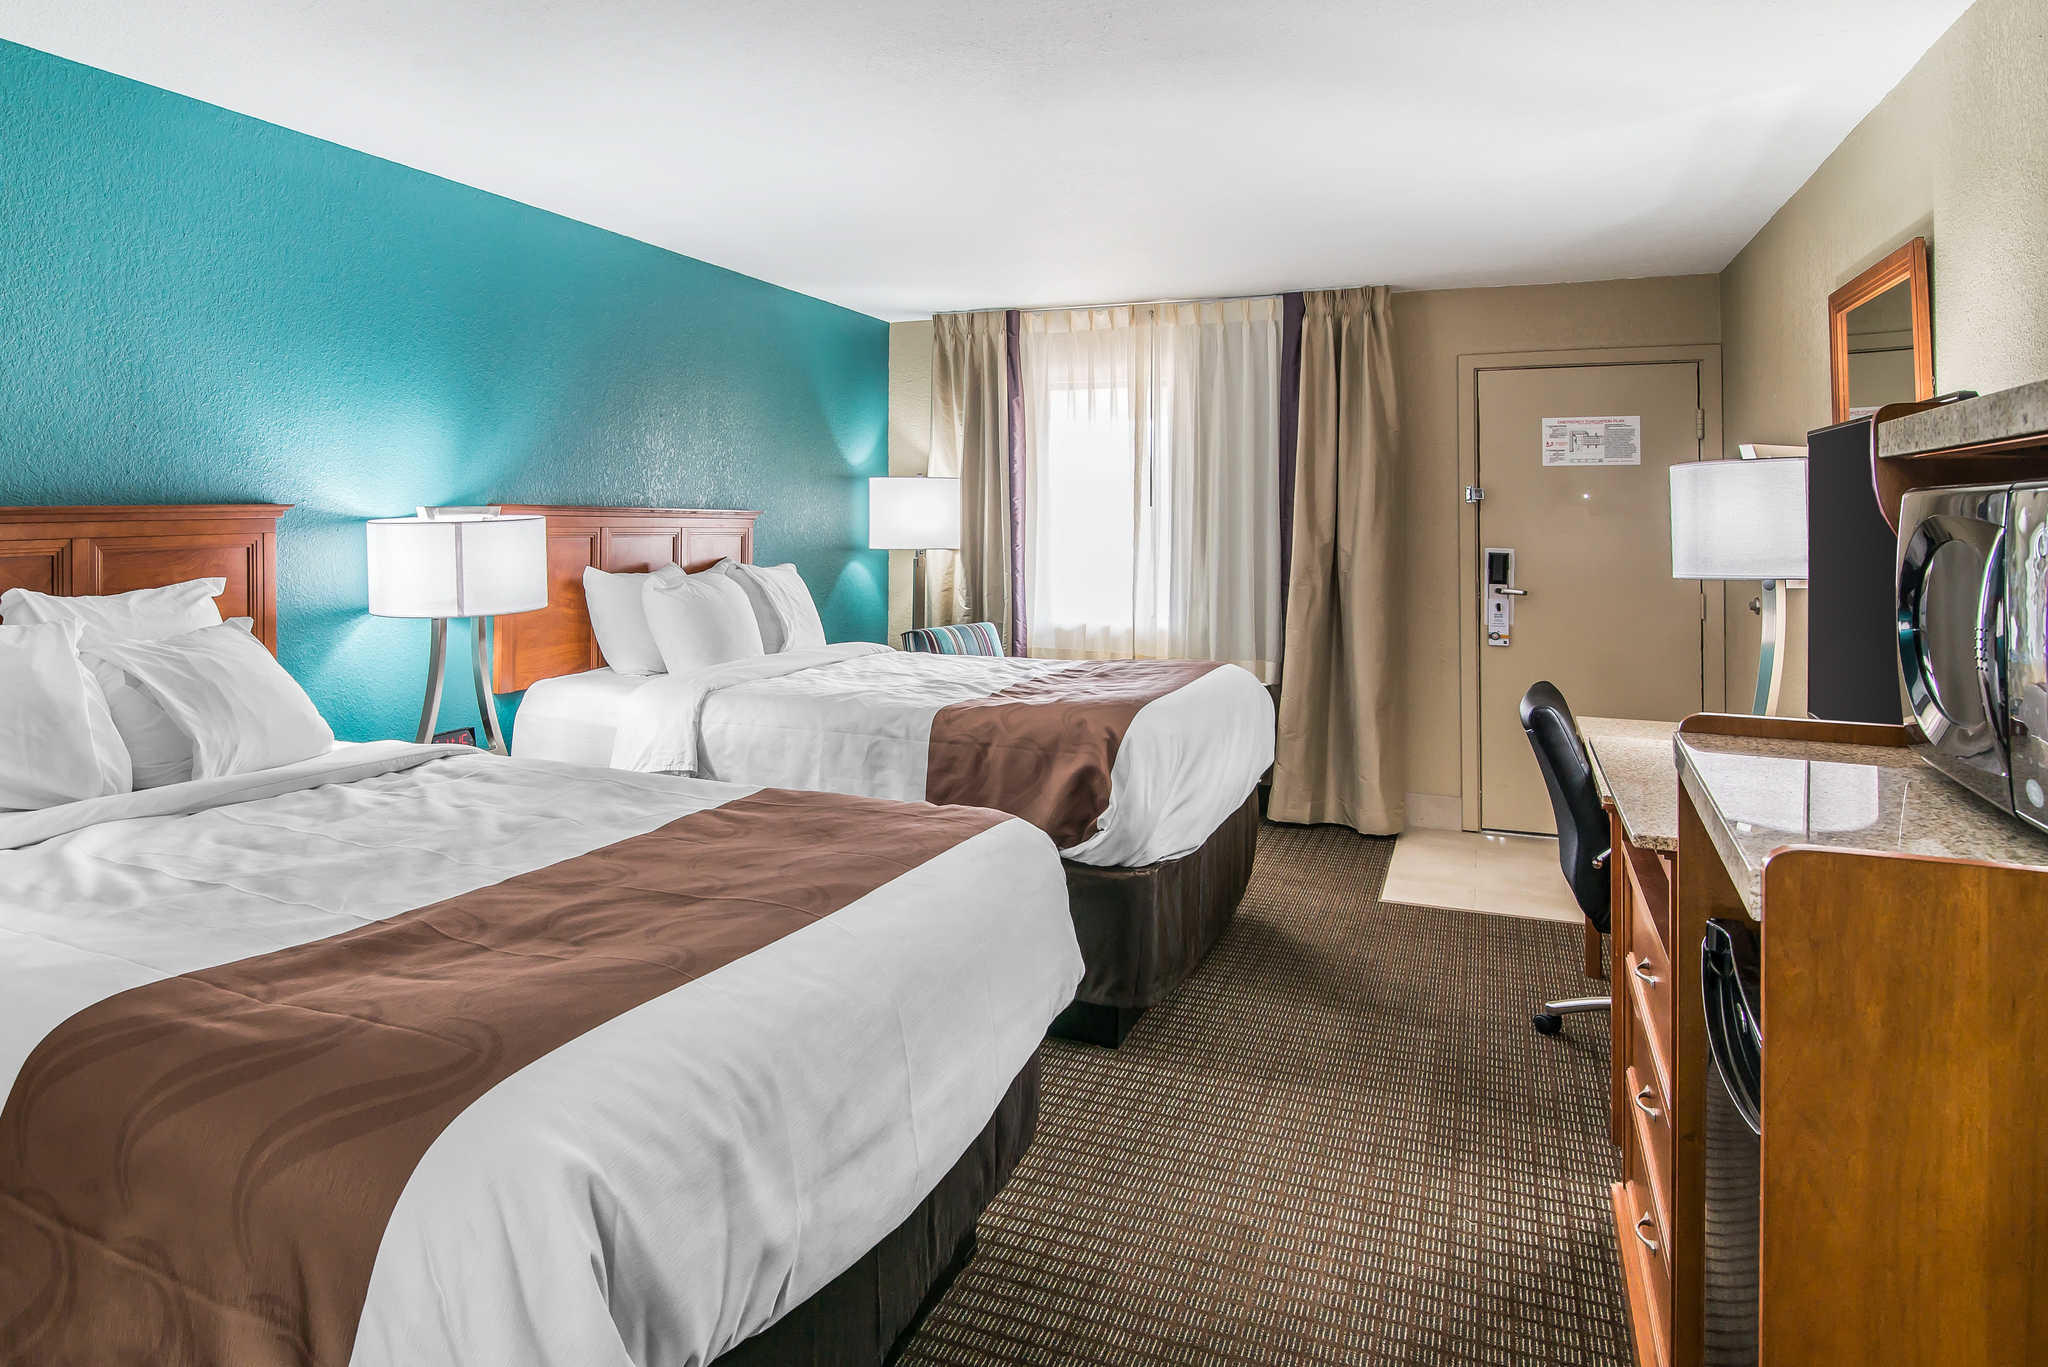 Quality Inn & Suites Near White Sands National Monument image 12